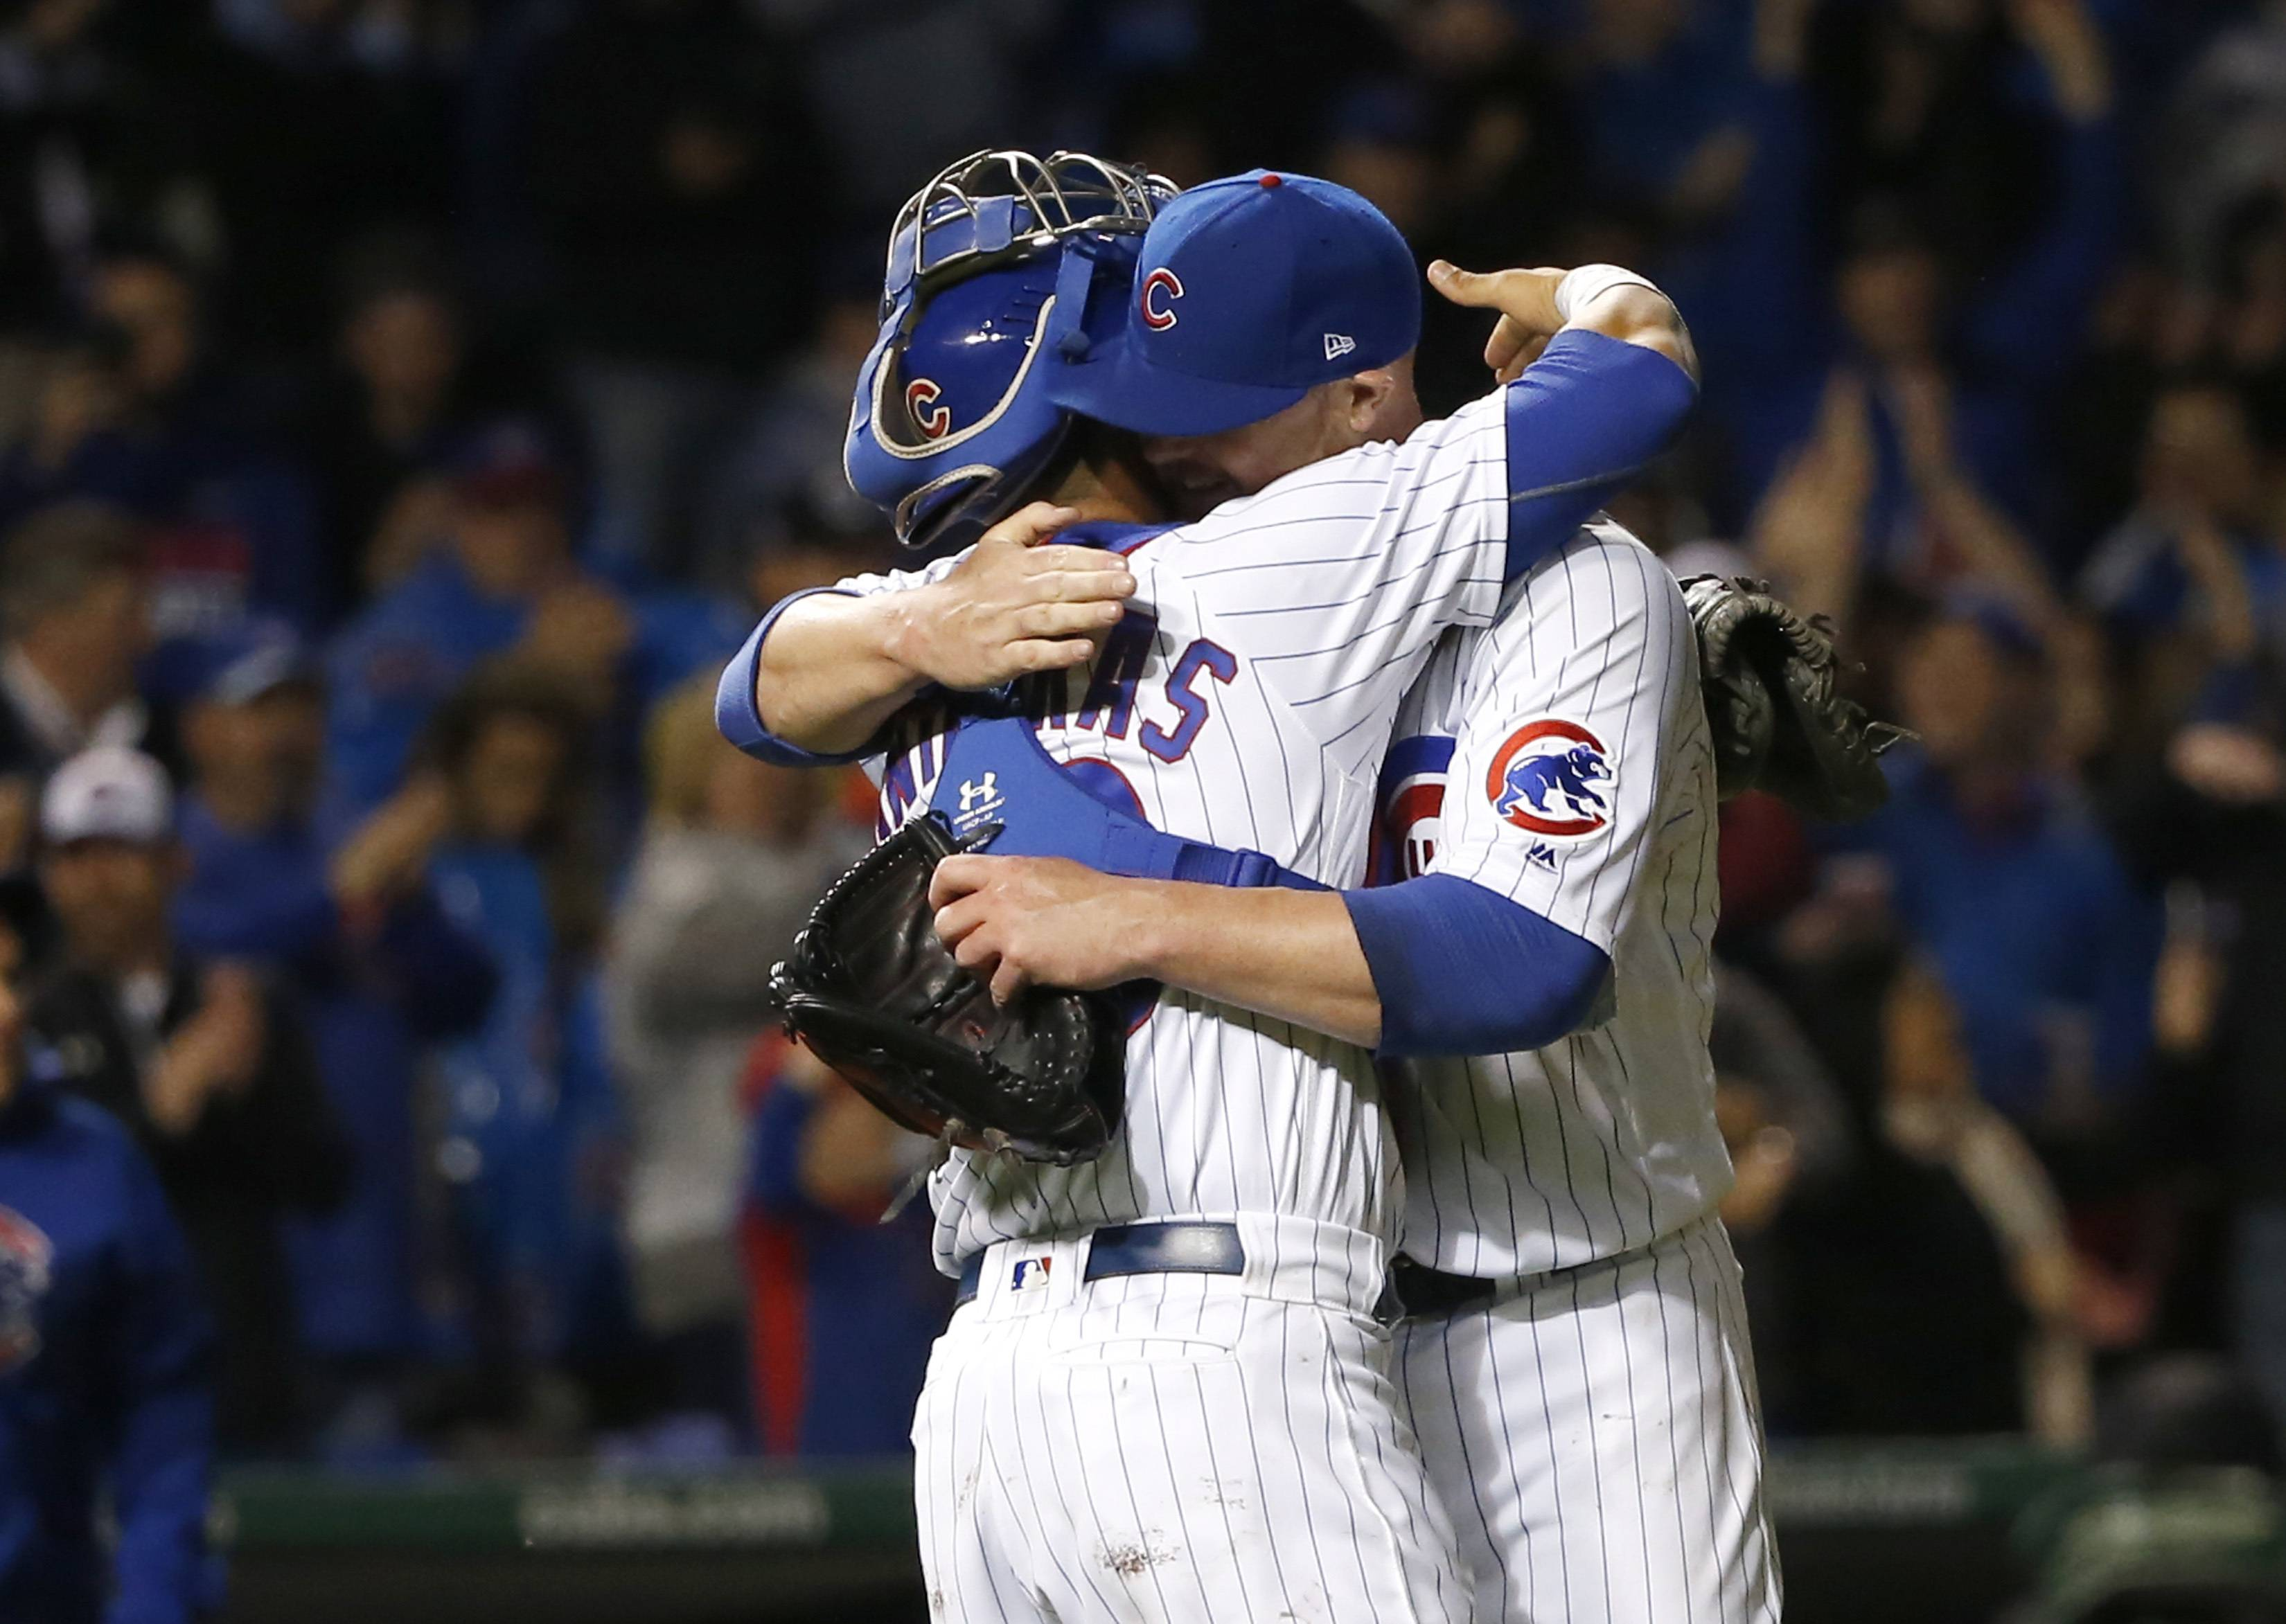 Chicago Cubs catcher Willson Contreras, left, hugs starting pitcher Jon Lester as they celebrate Lester's complete game and the team's 4-1 win over the San Francisco Giants after a baseball game Tuesday, May 23, 2017, in Chicago. (AP Photo/Charles Rex Arbogast)